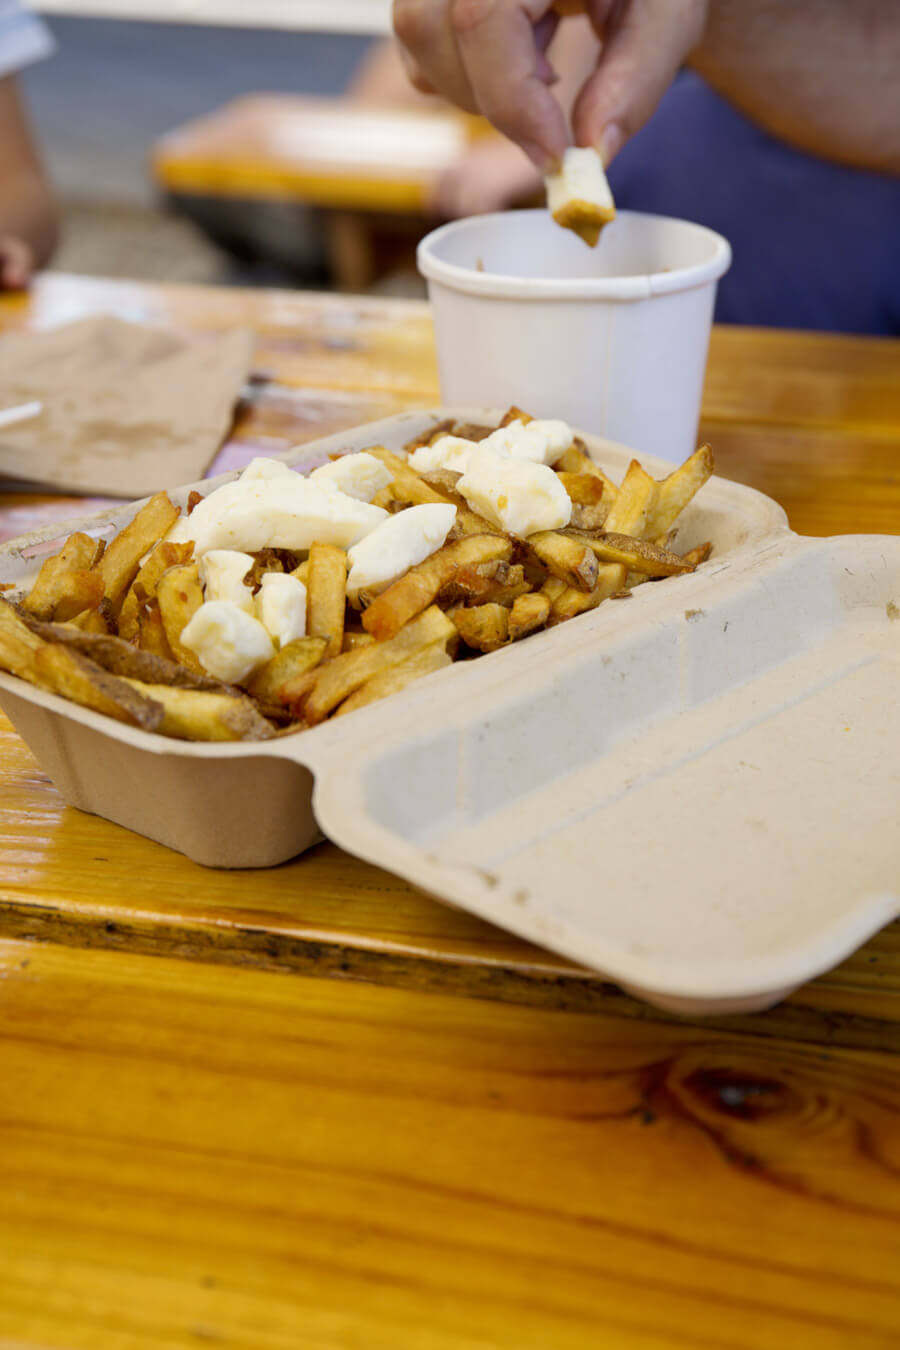 Fries with halloumi and saté-sauce